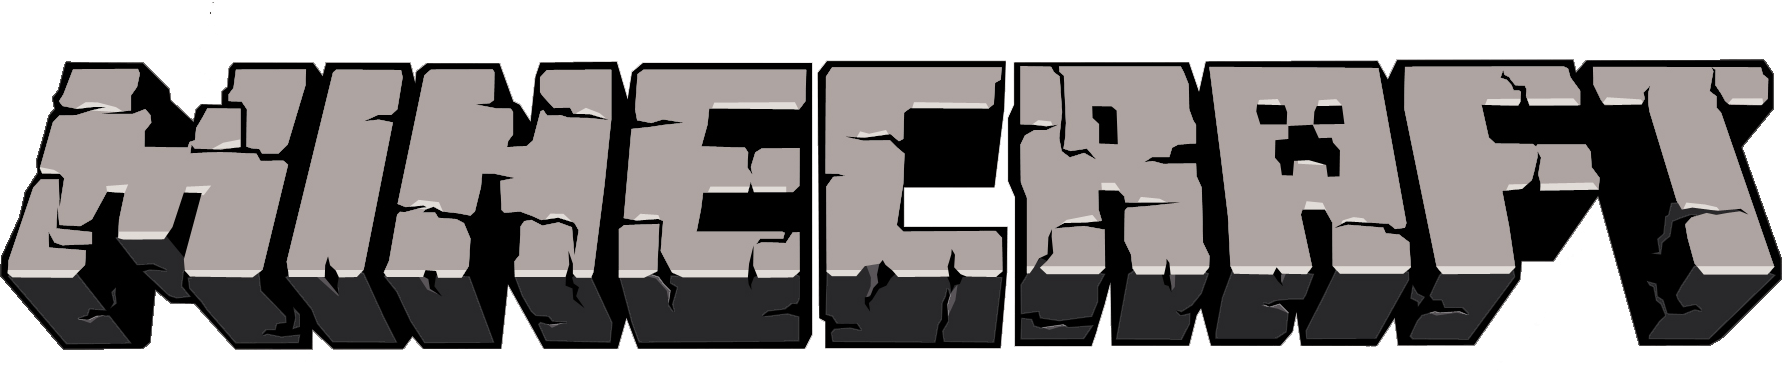 Minecraft sign png. Image logo club penguin